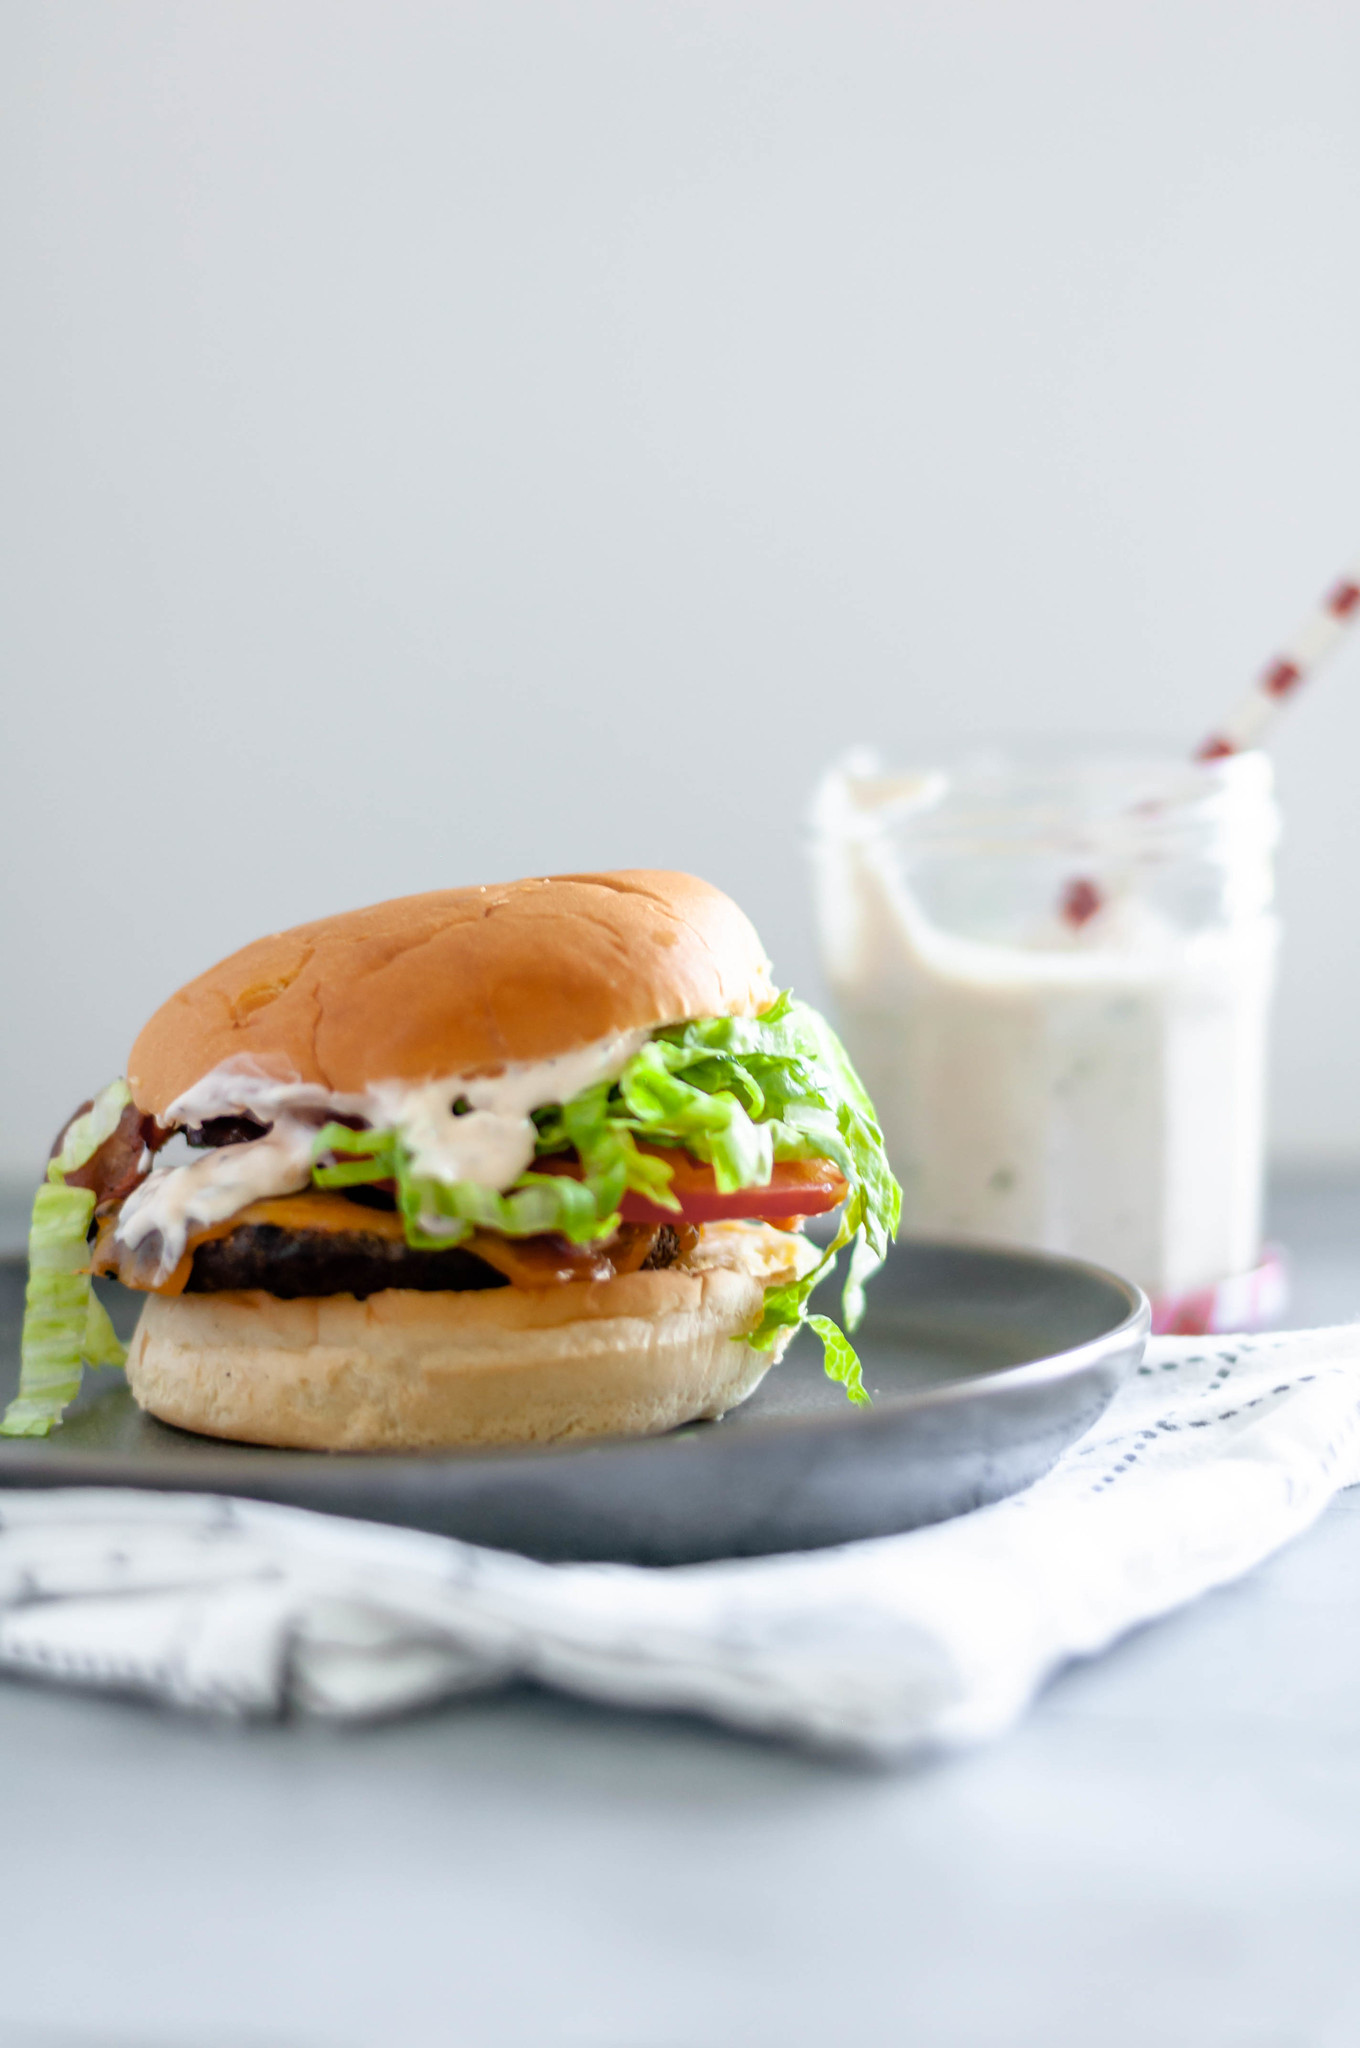 You will become the hostest with the mostest when you serve your guests juicy cheeseburgers slathered in this flavorful burger sauce. It's super simple to mix up with ingredients you probably already have in your refrigerator. Super flavorful and delicious.